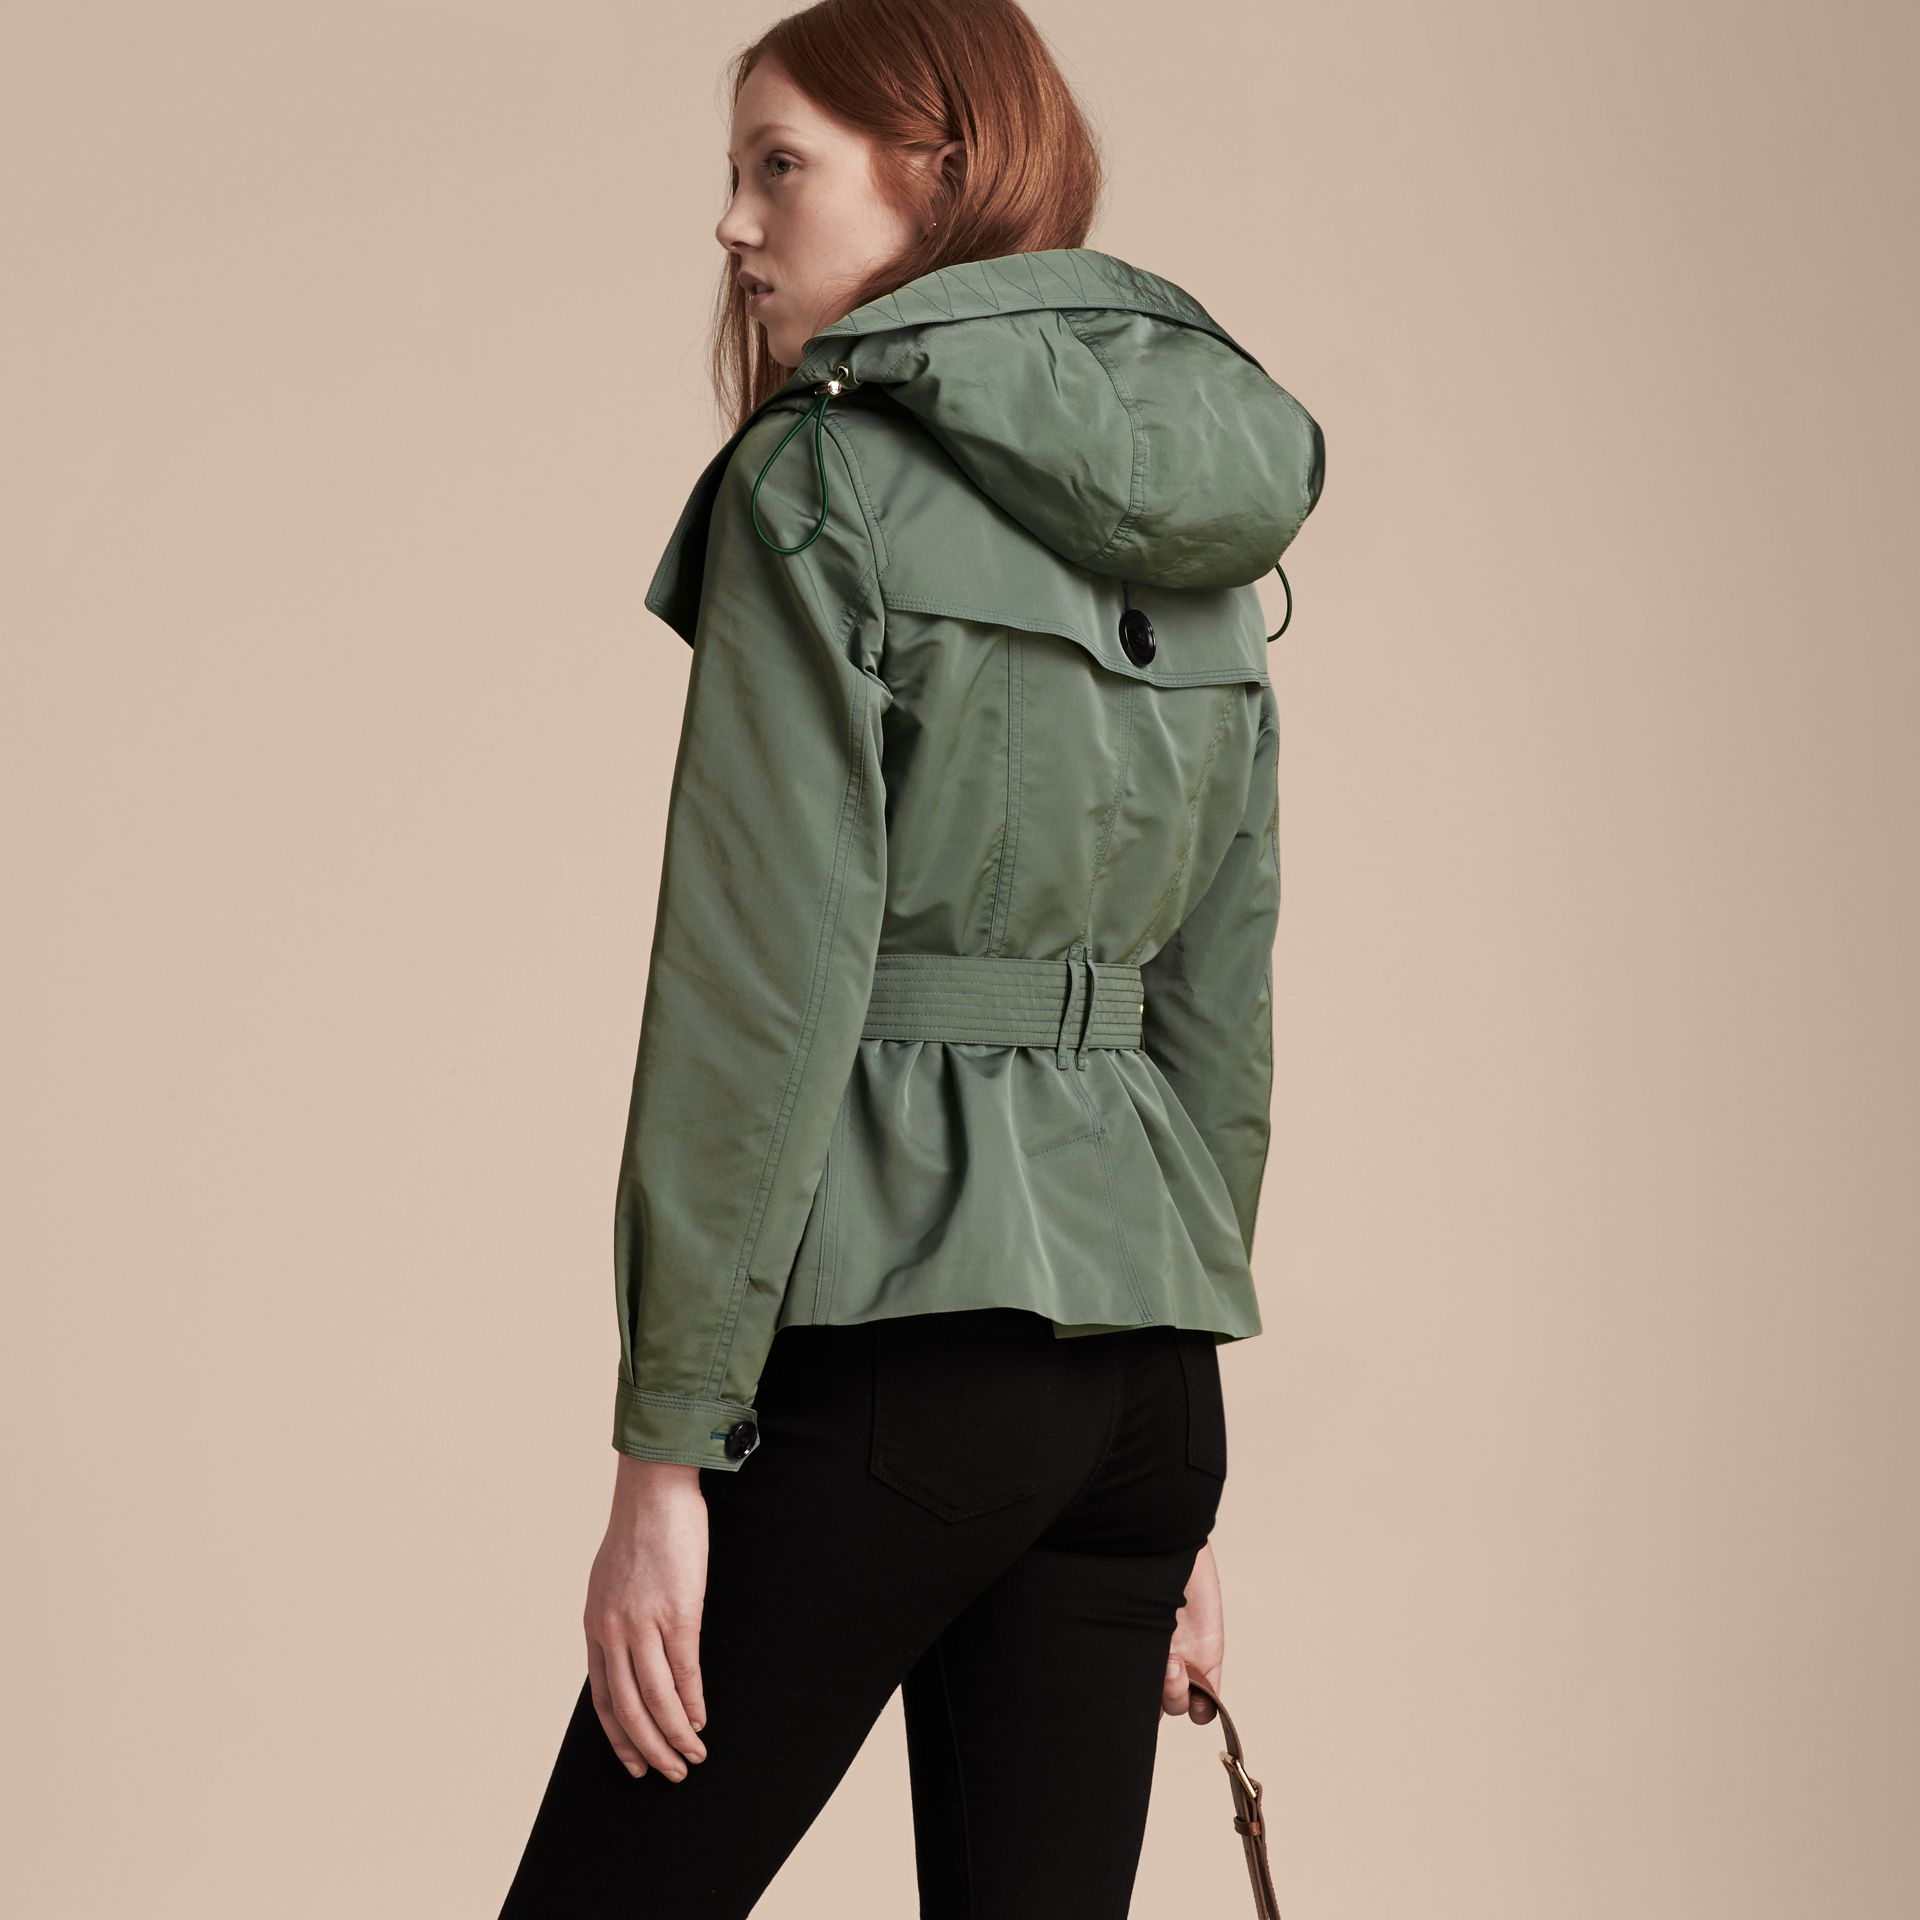 Eucalyptus green Showerproof Taffeta Trench Jacket with Detachable Hood Eucalyptus Green - gallery image 3